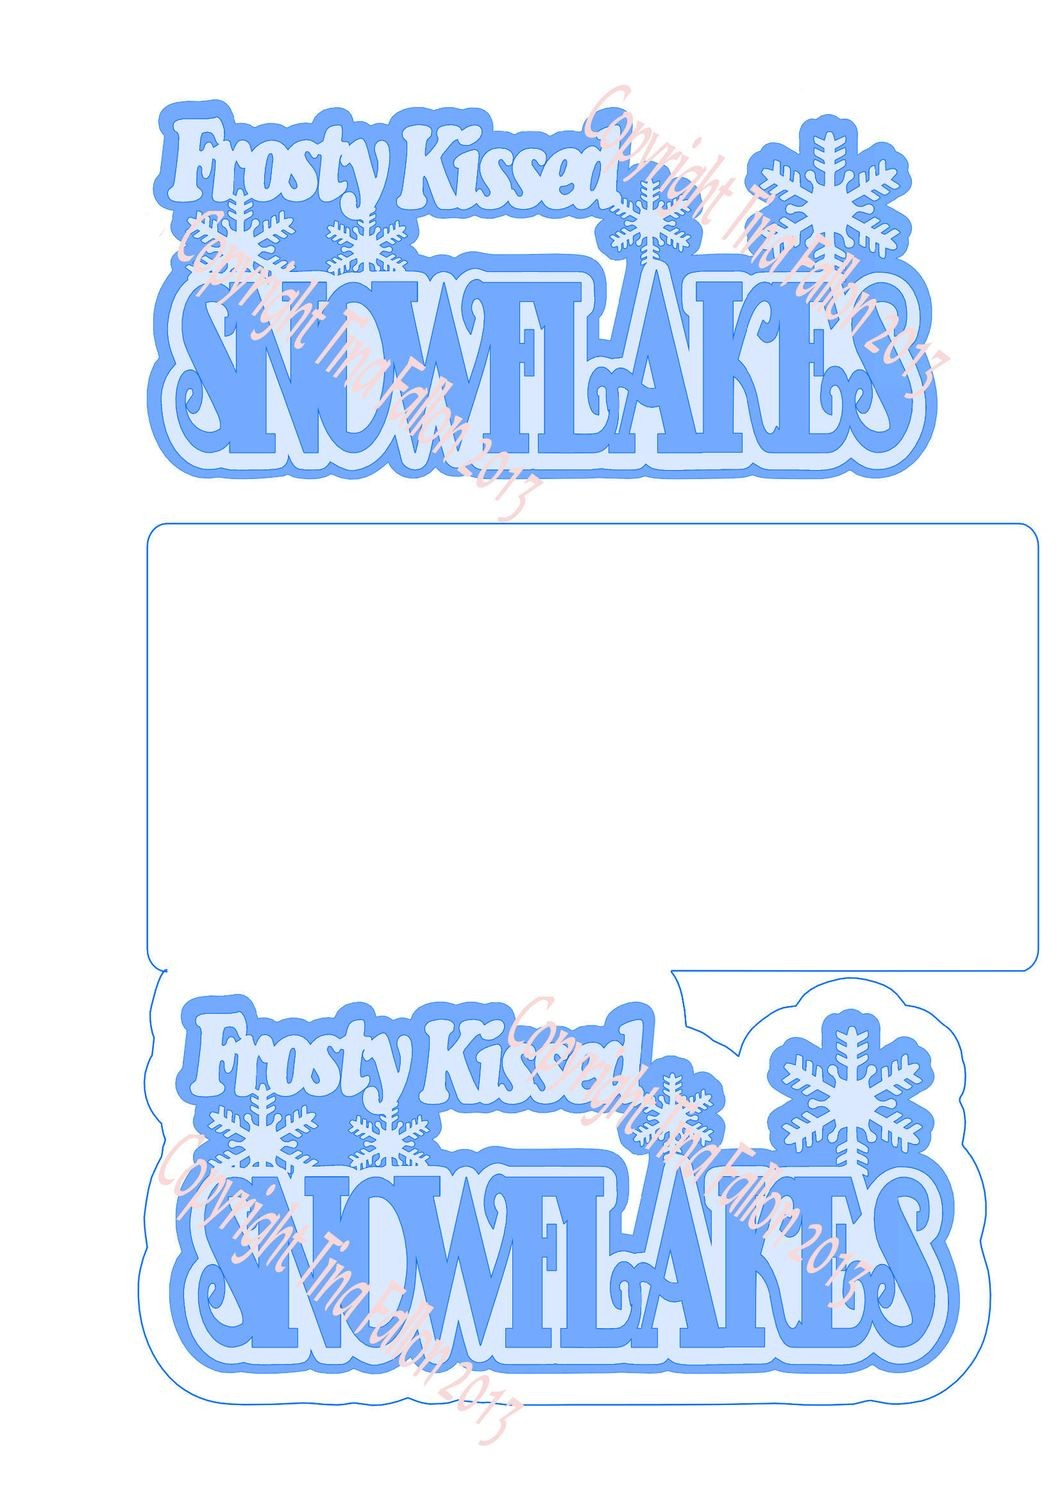 Frosty Kissed Snowflake 9 Card Template